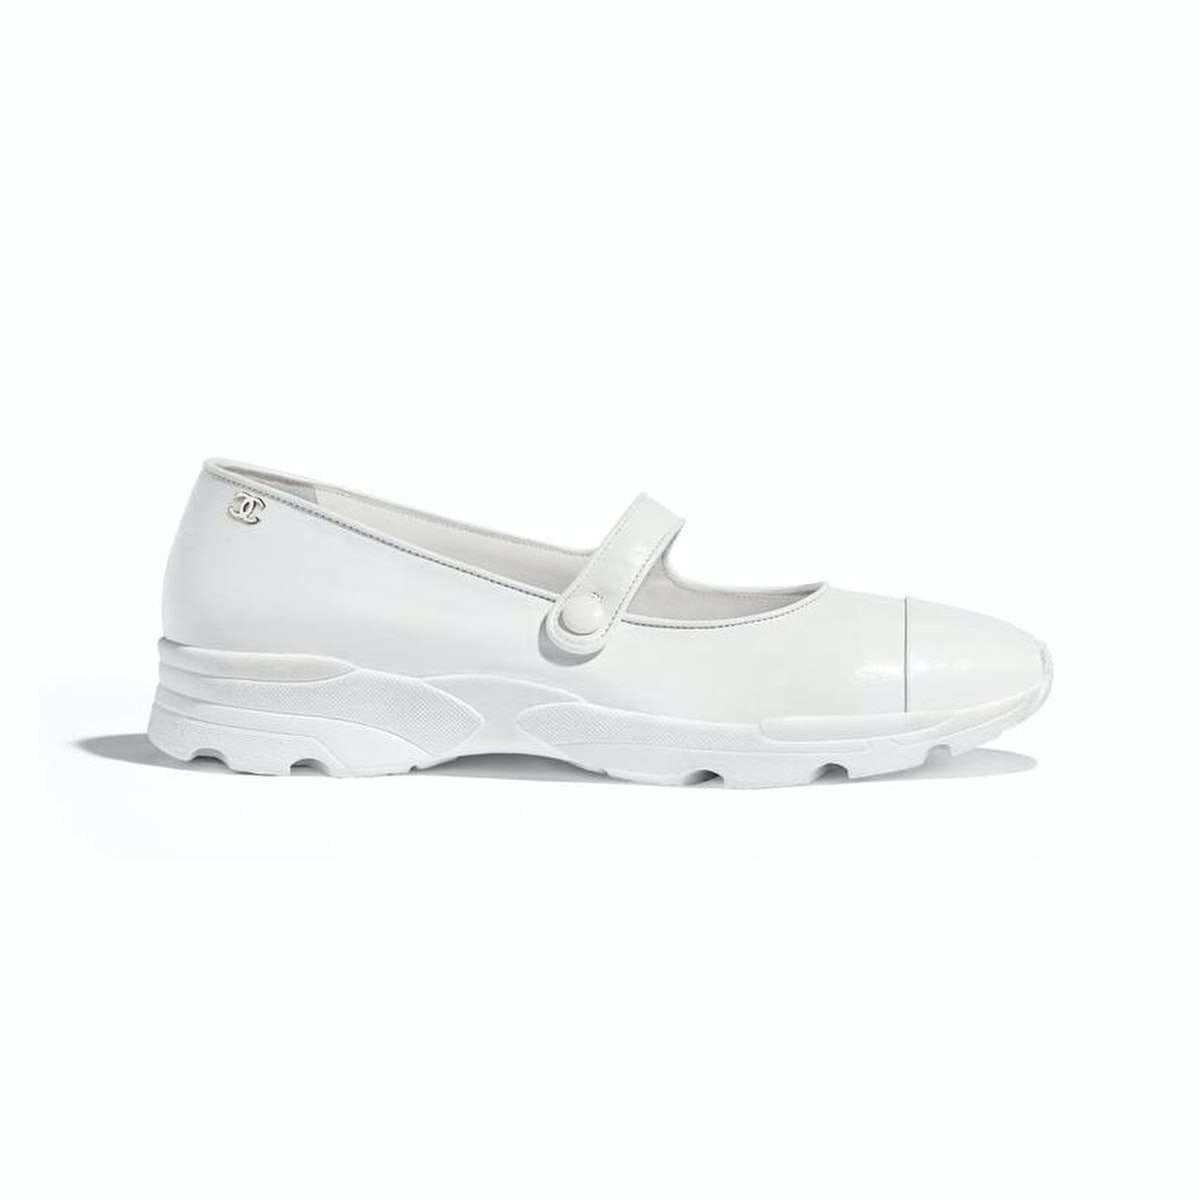 Chanel White Calfskin Leather Mary Jane Flats